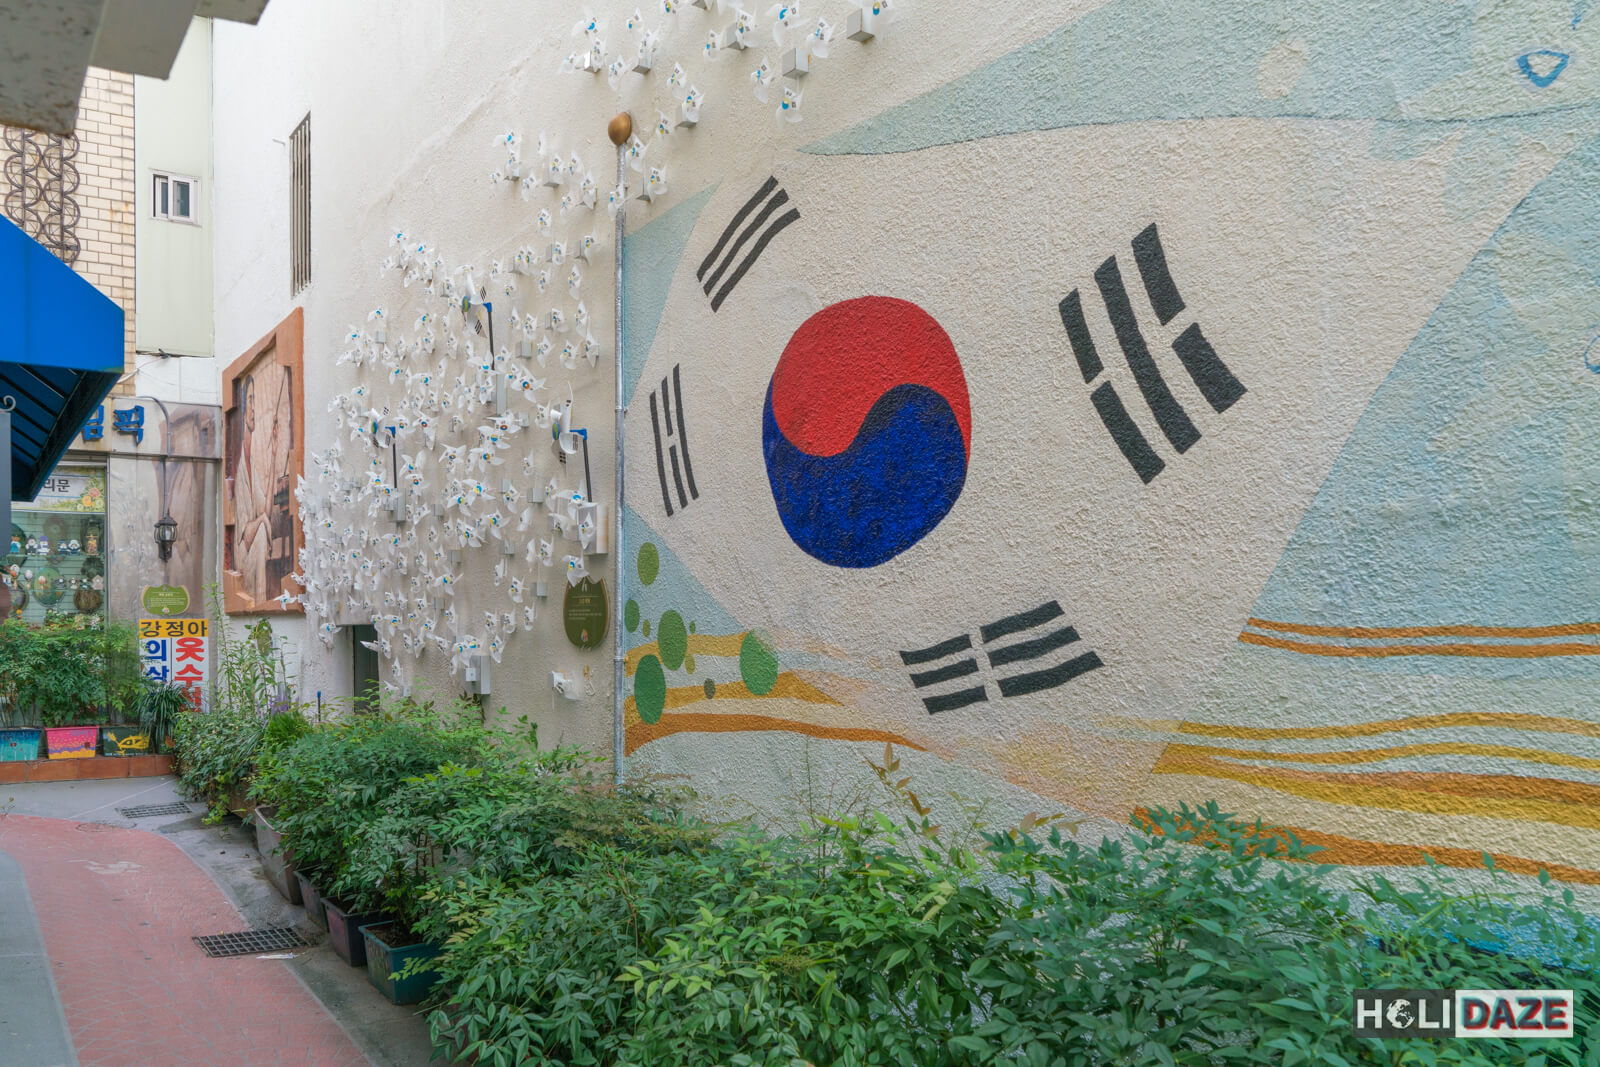 The street art in Changdong Art Village is a mix of painted and 3D murals